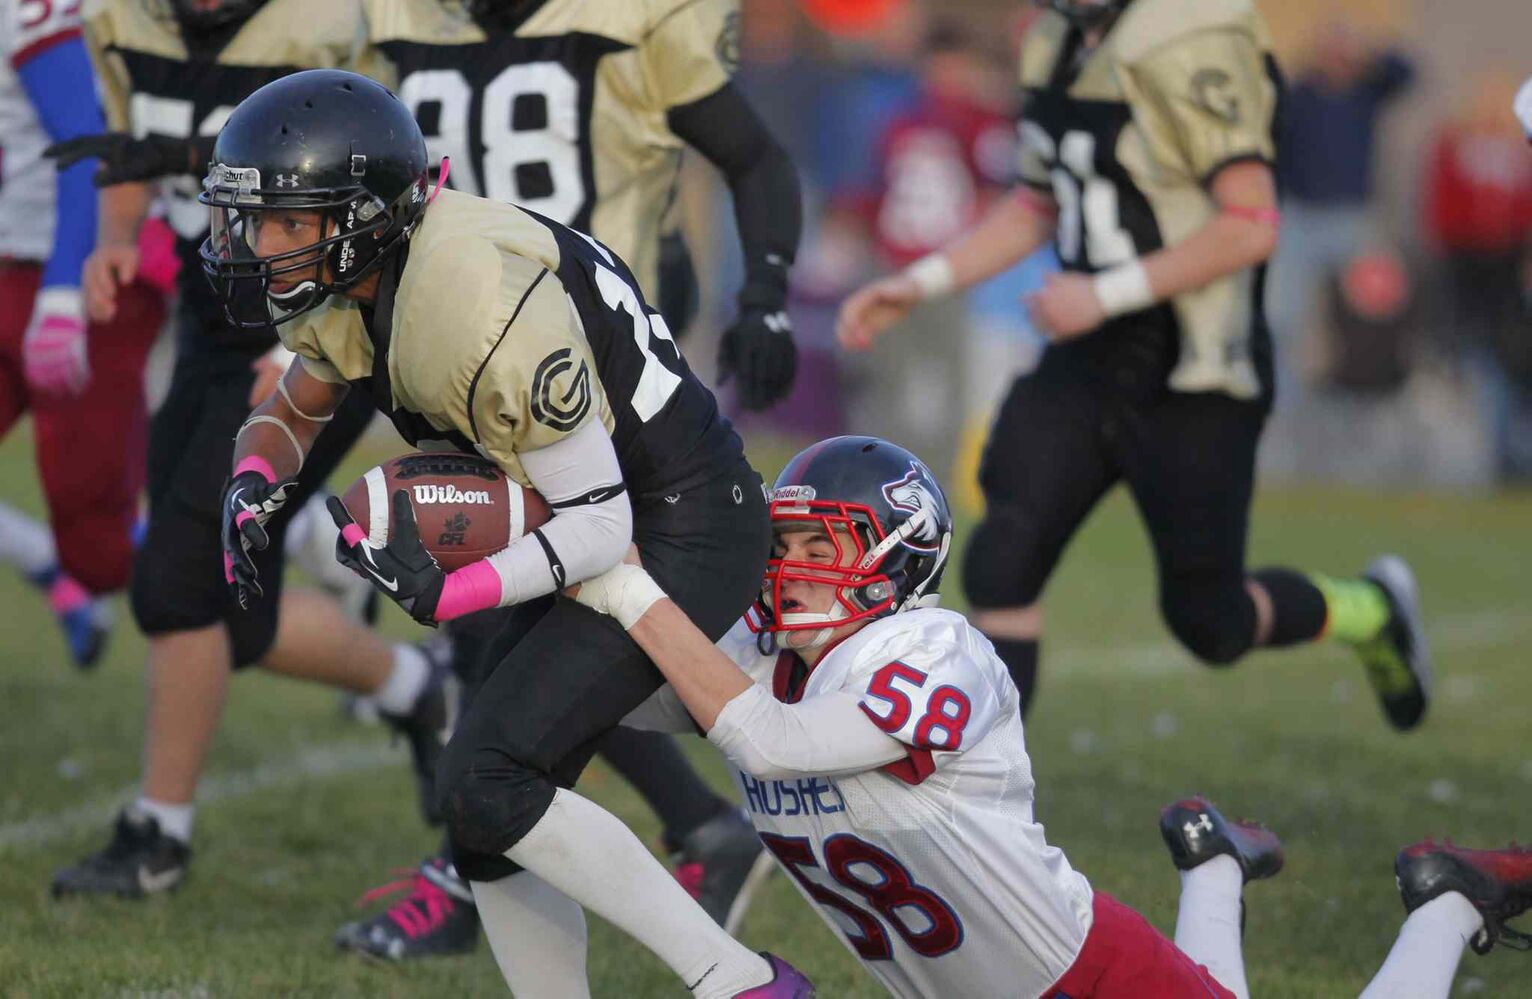 Devon Taylor (left) can't quite seem to shake Elliott Ormonde of the Huskies. (Boris Minkevich / Winnipeg Free Press)